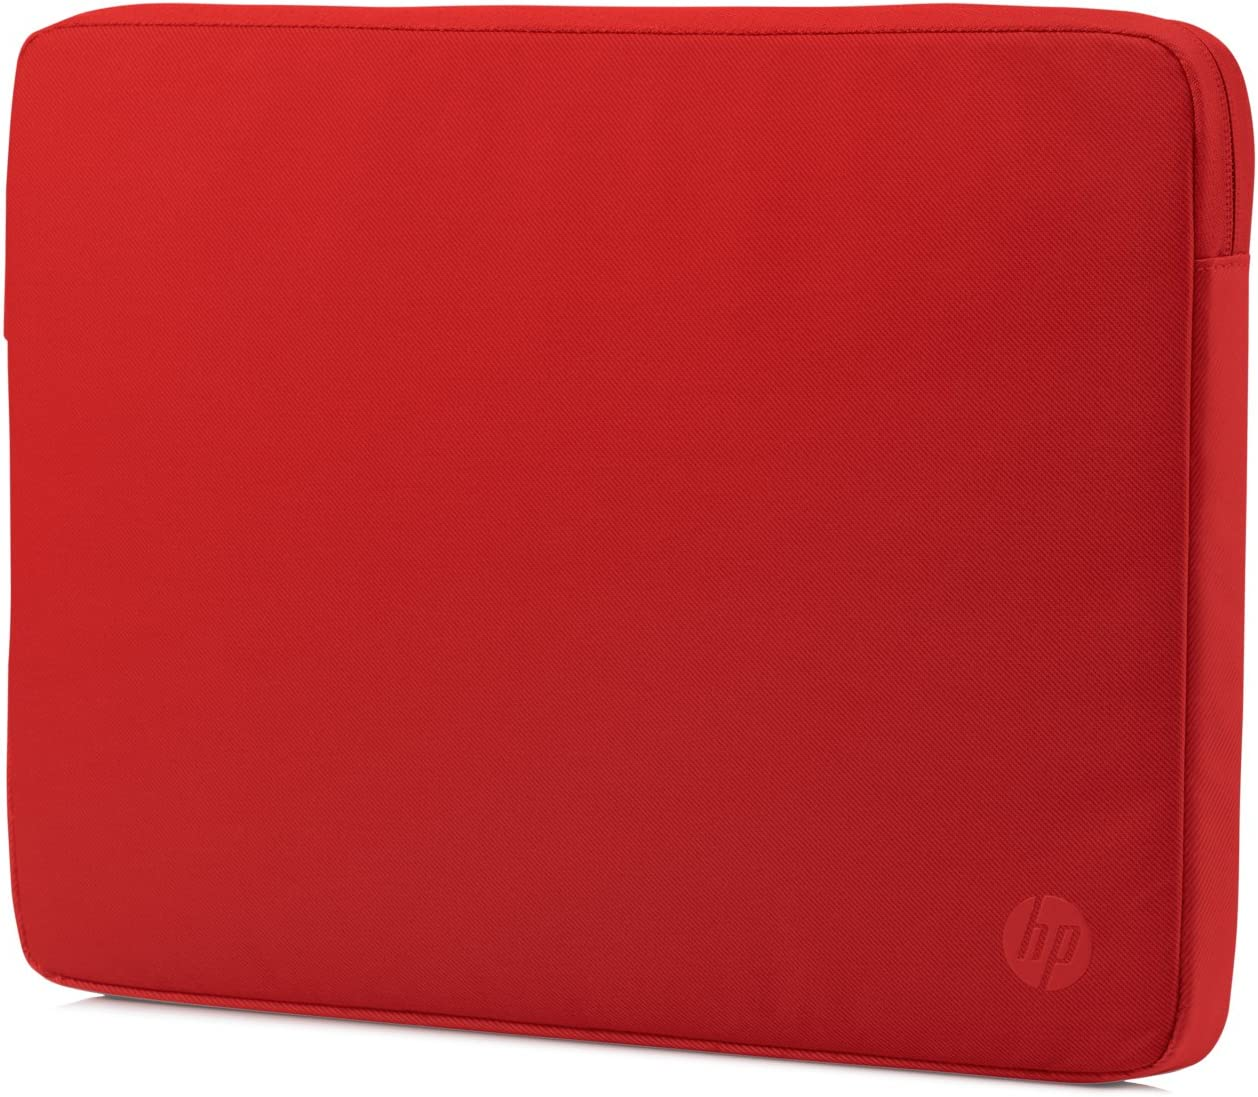 HP Spectrum Pavilion 11.6 Inch Laptop Sleeve -Red (M5Q13AA#ABL)